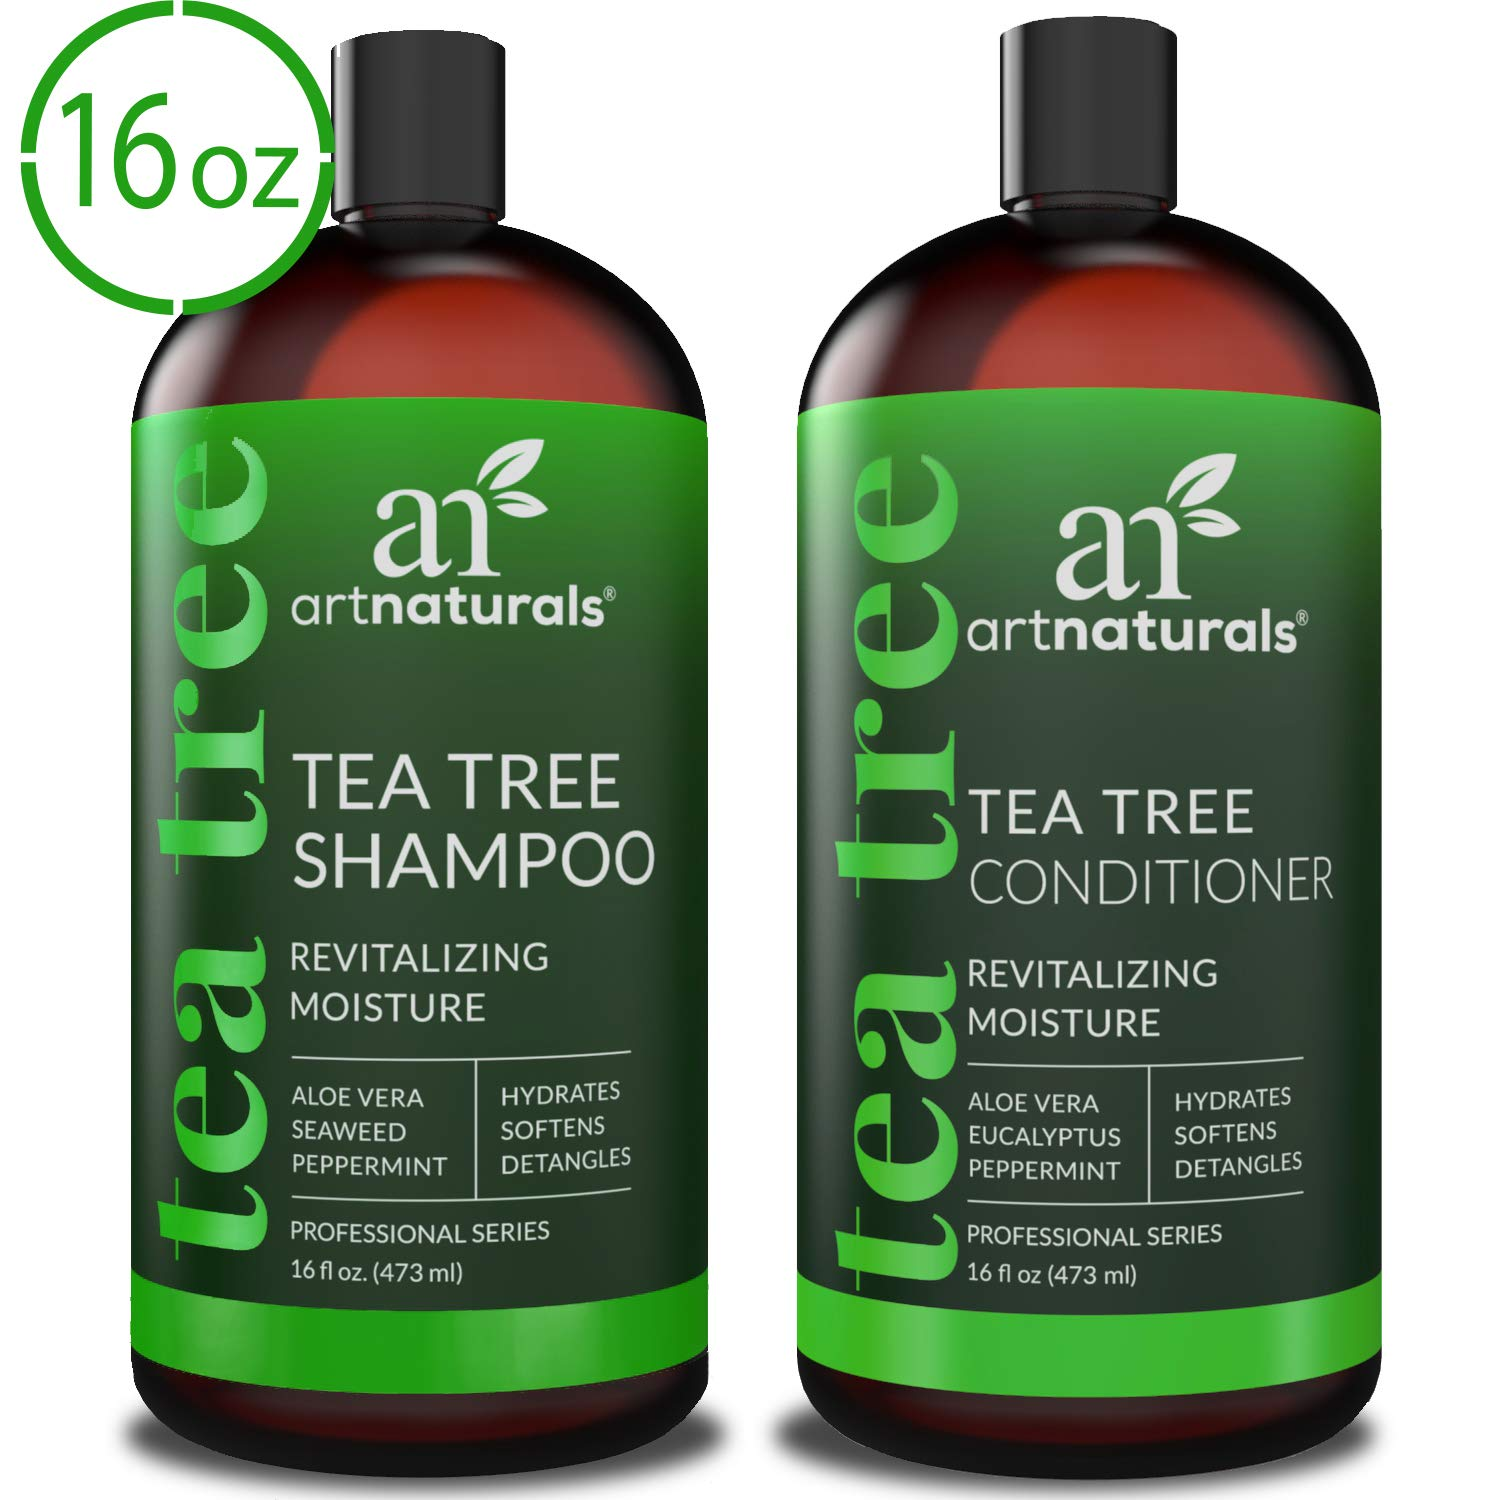 ArtNaturals Tea Tree Shampoo and Conditioner Set - (2 x 16 Fl Oz / 473ml) - Sulfate Free - Therapeutic Grade Tea Tree Essential Oil - Deep Cleansing for Dandruff, Lice, Dry Scalp and Itchy Hair by ArtNaturals